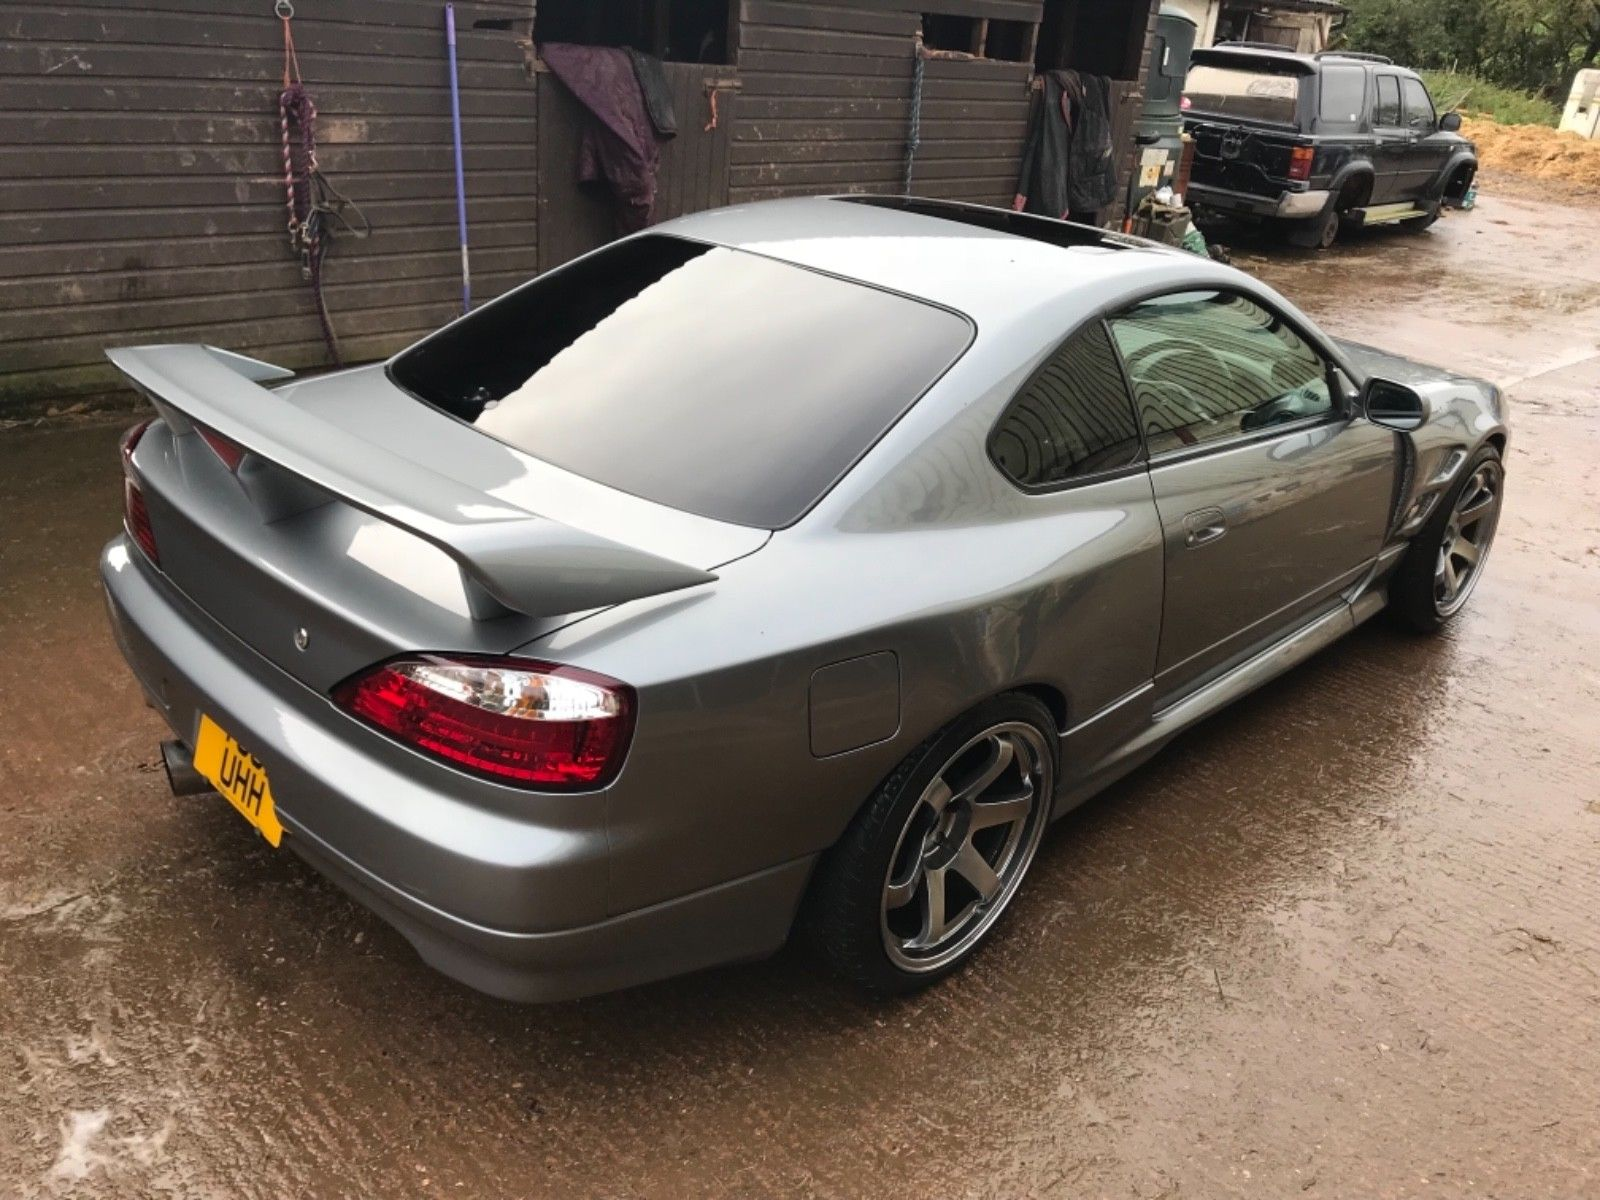 Nissan S15 Silvia Spec-R SR20DET Manual - Jap Imports UK